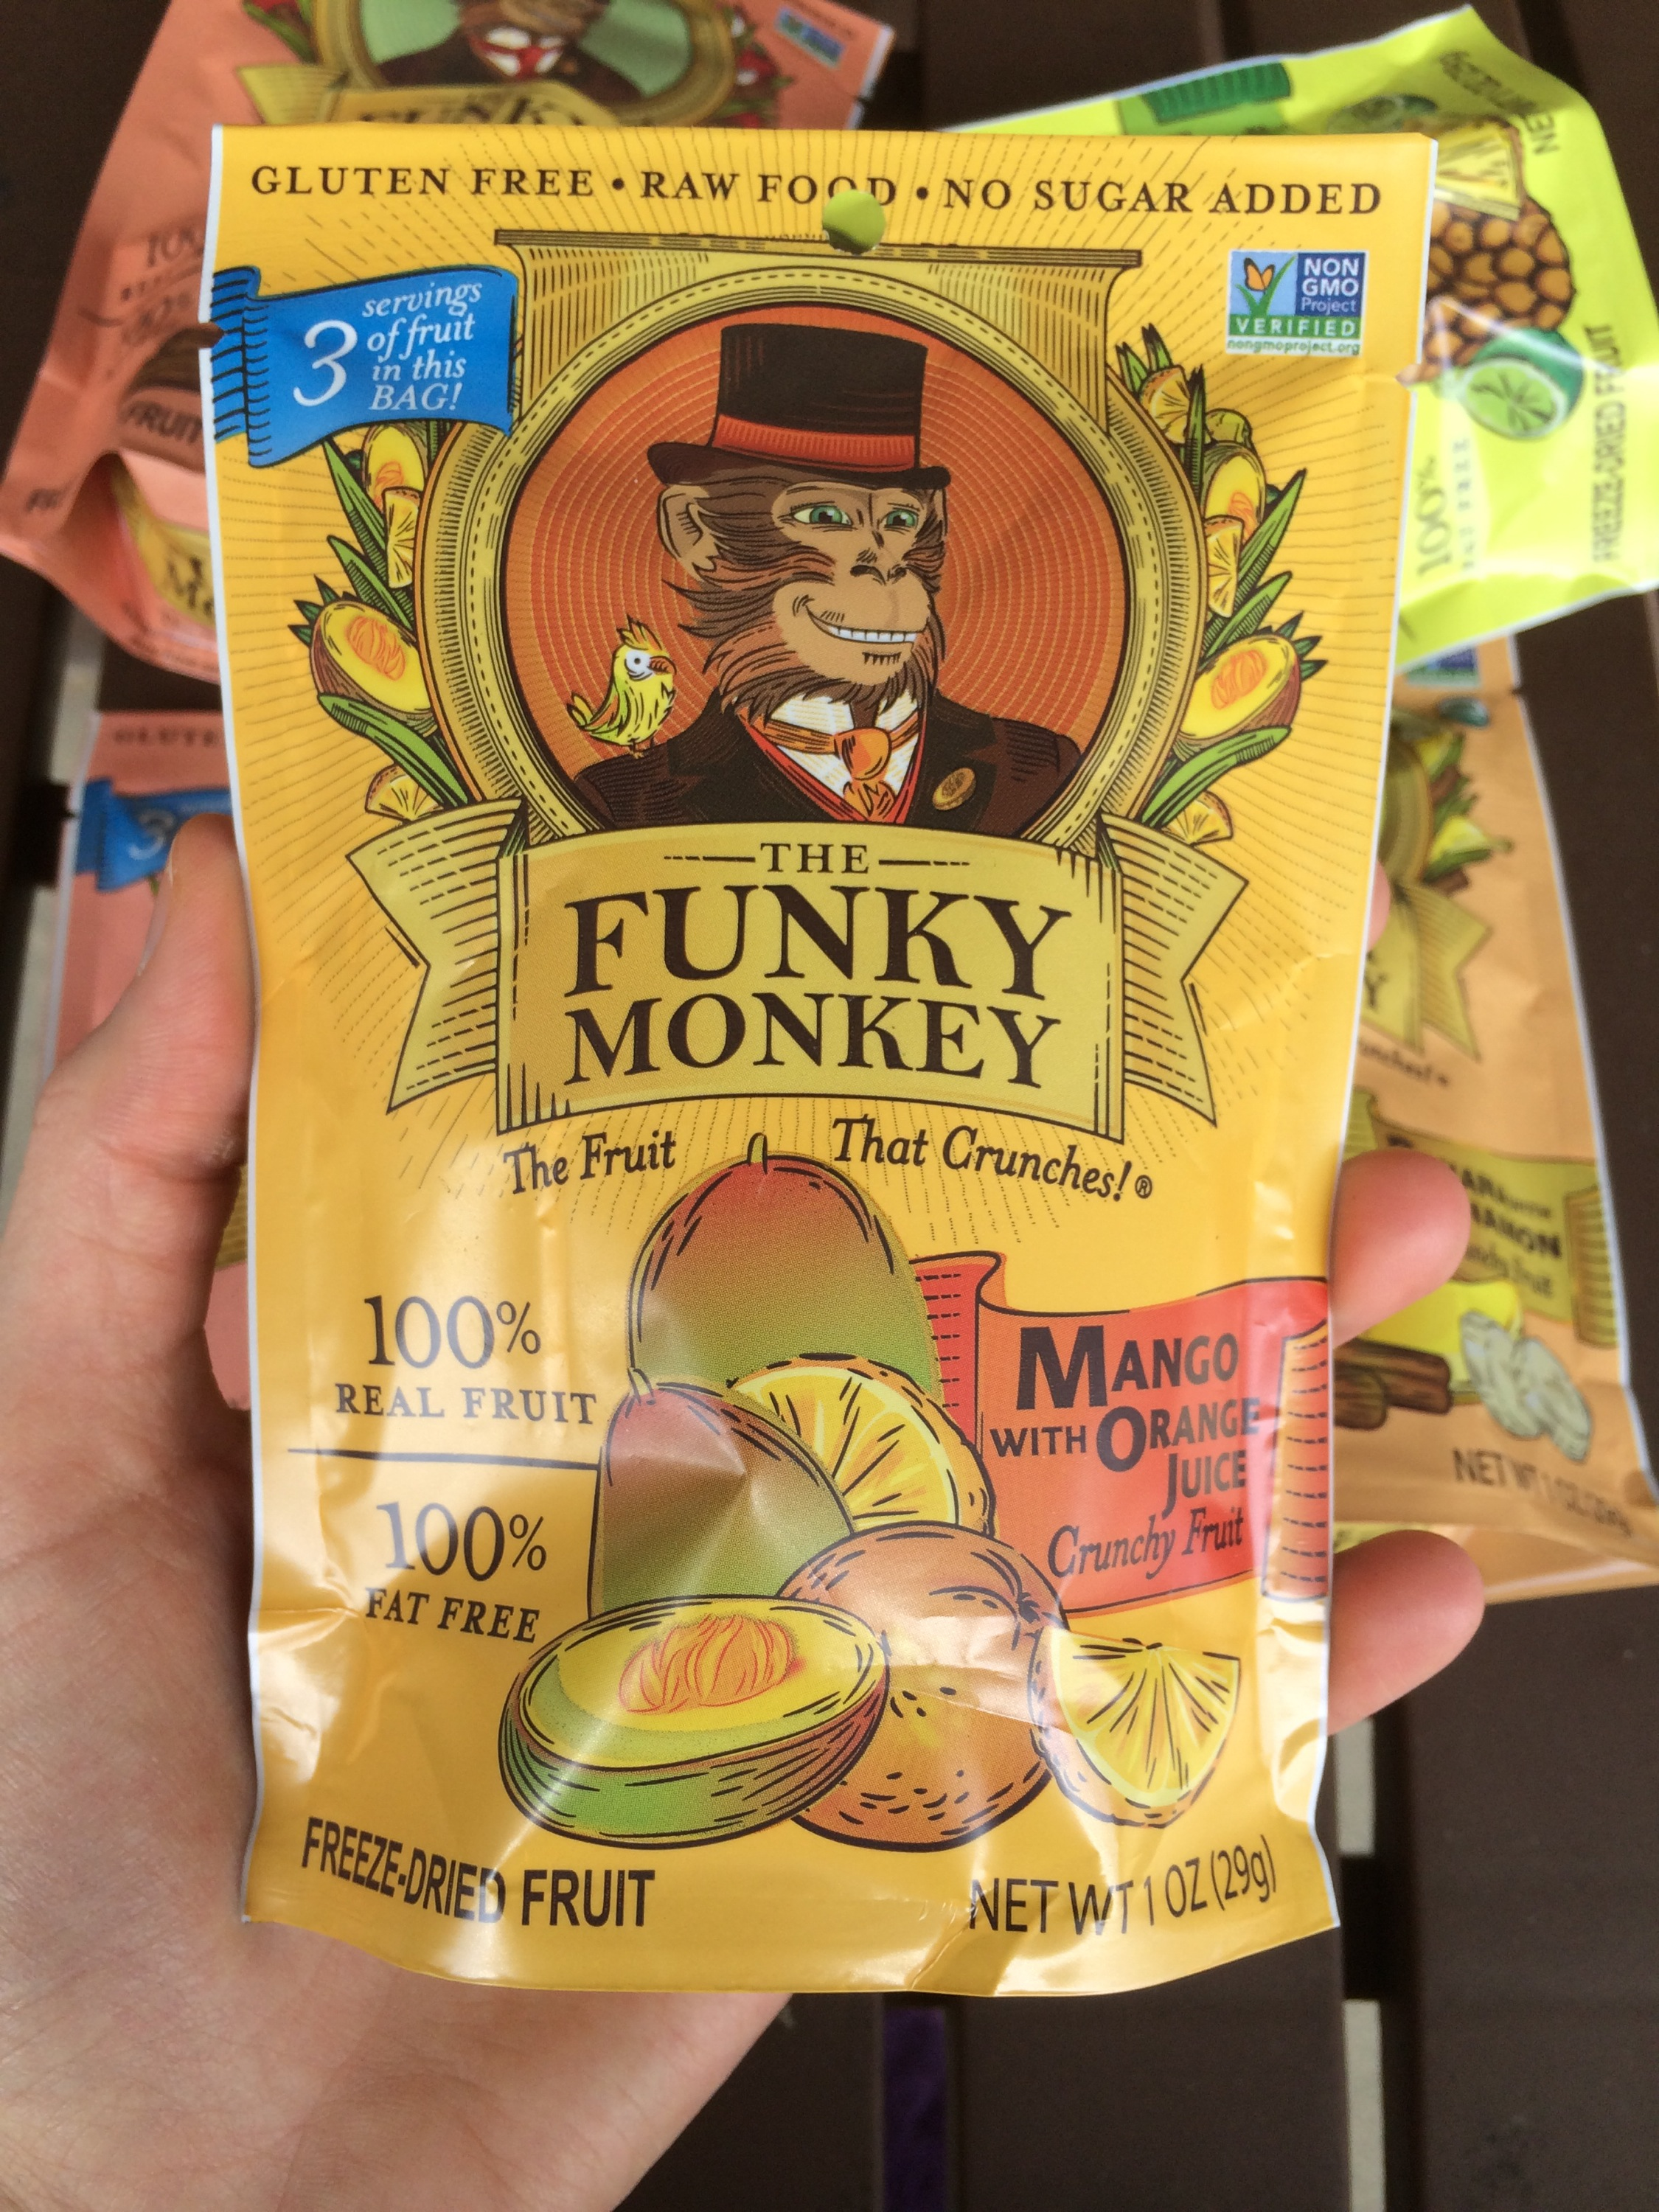 Food Review - The Funky Monkey Freeze-Dried Fruit (Free Of The Top 8 Allergens!) - Lazy Girl Vegan